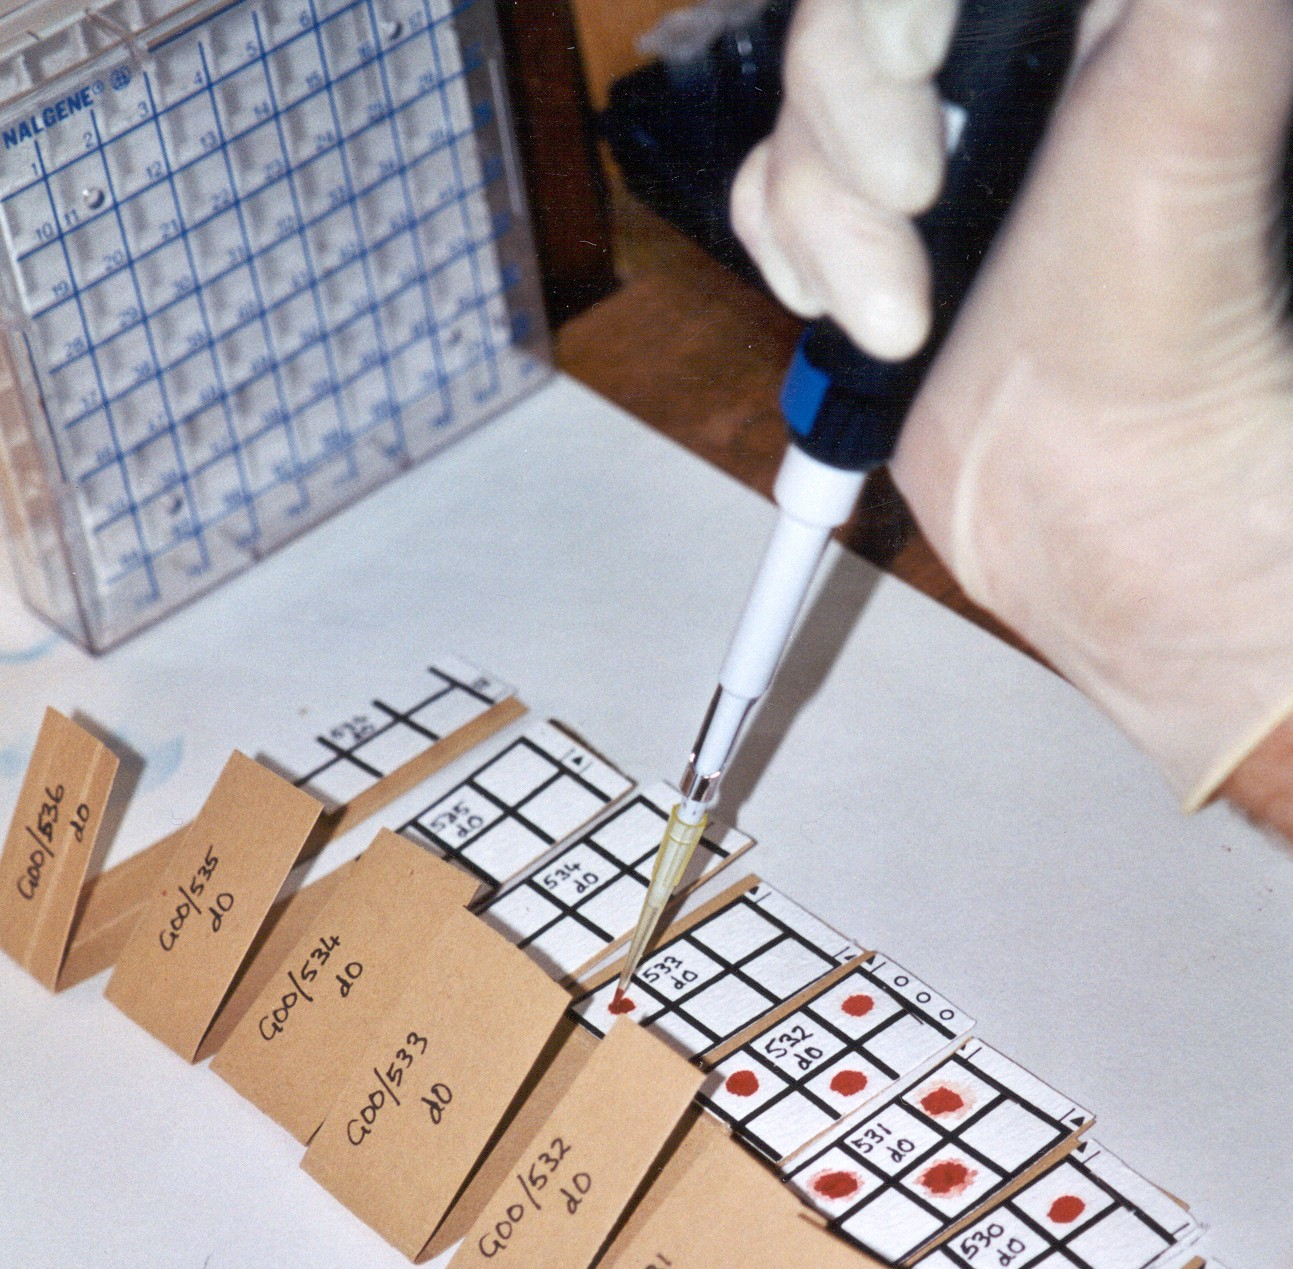 ELISA test- Image courtesy of Colin Sutherland